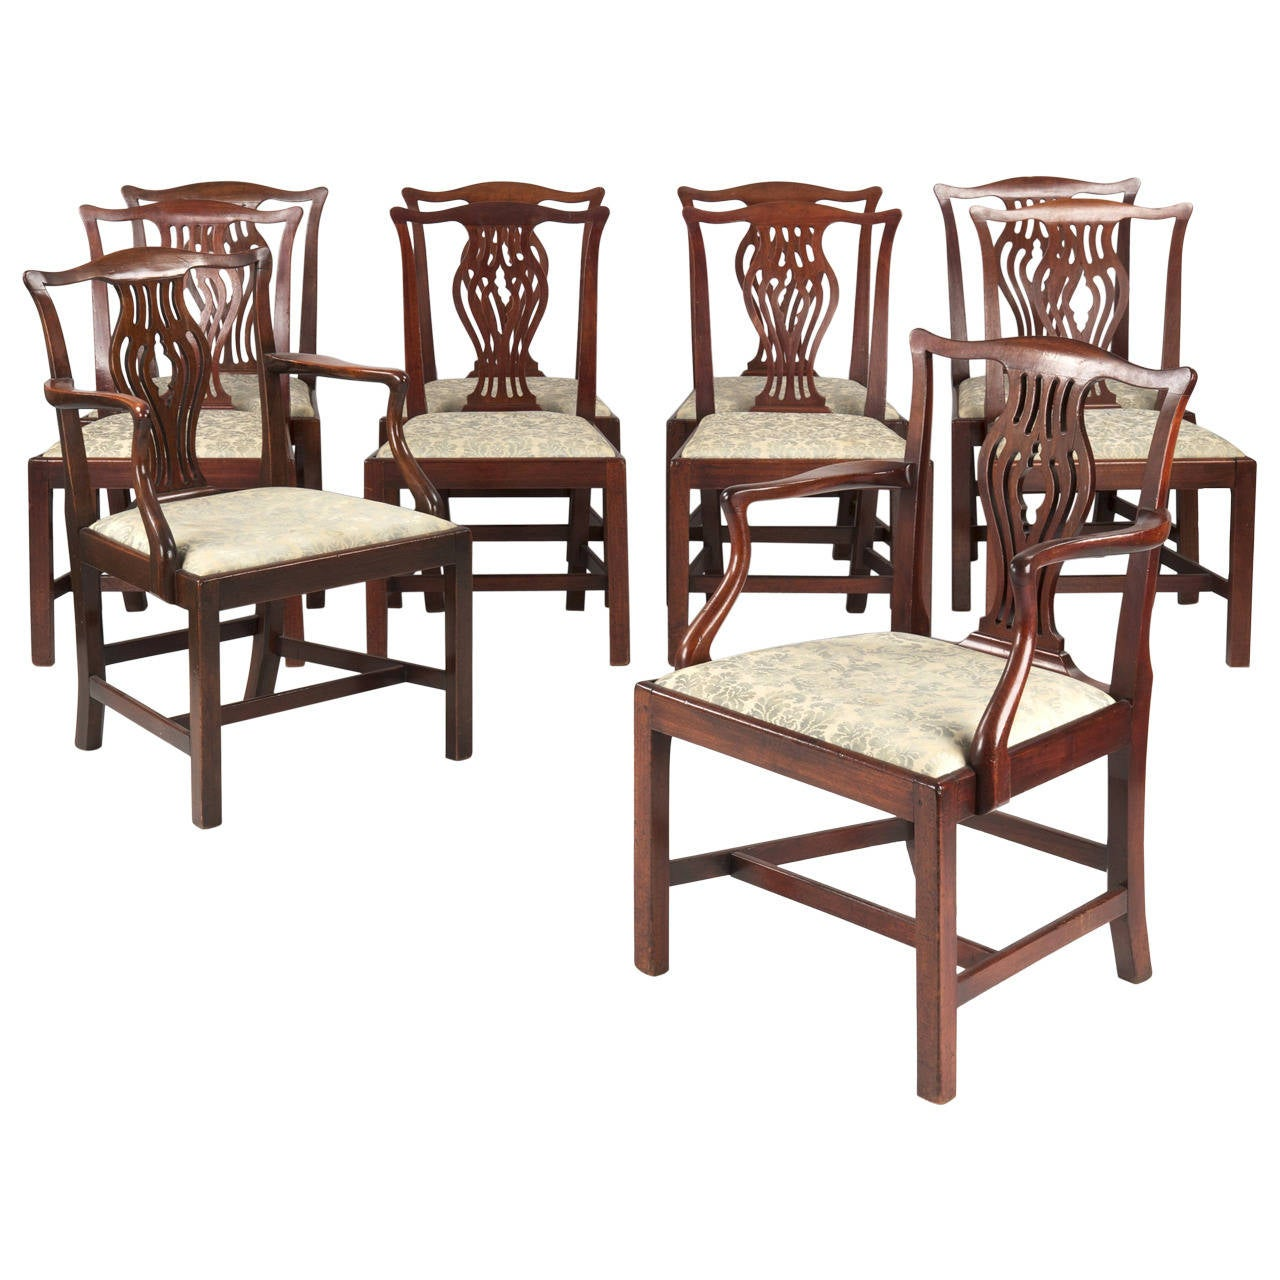 Antique Chippendale Dining Room Furniture: Set Of Ten English Chippendale Antique Mahogany Dining